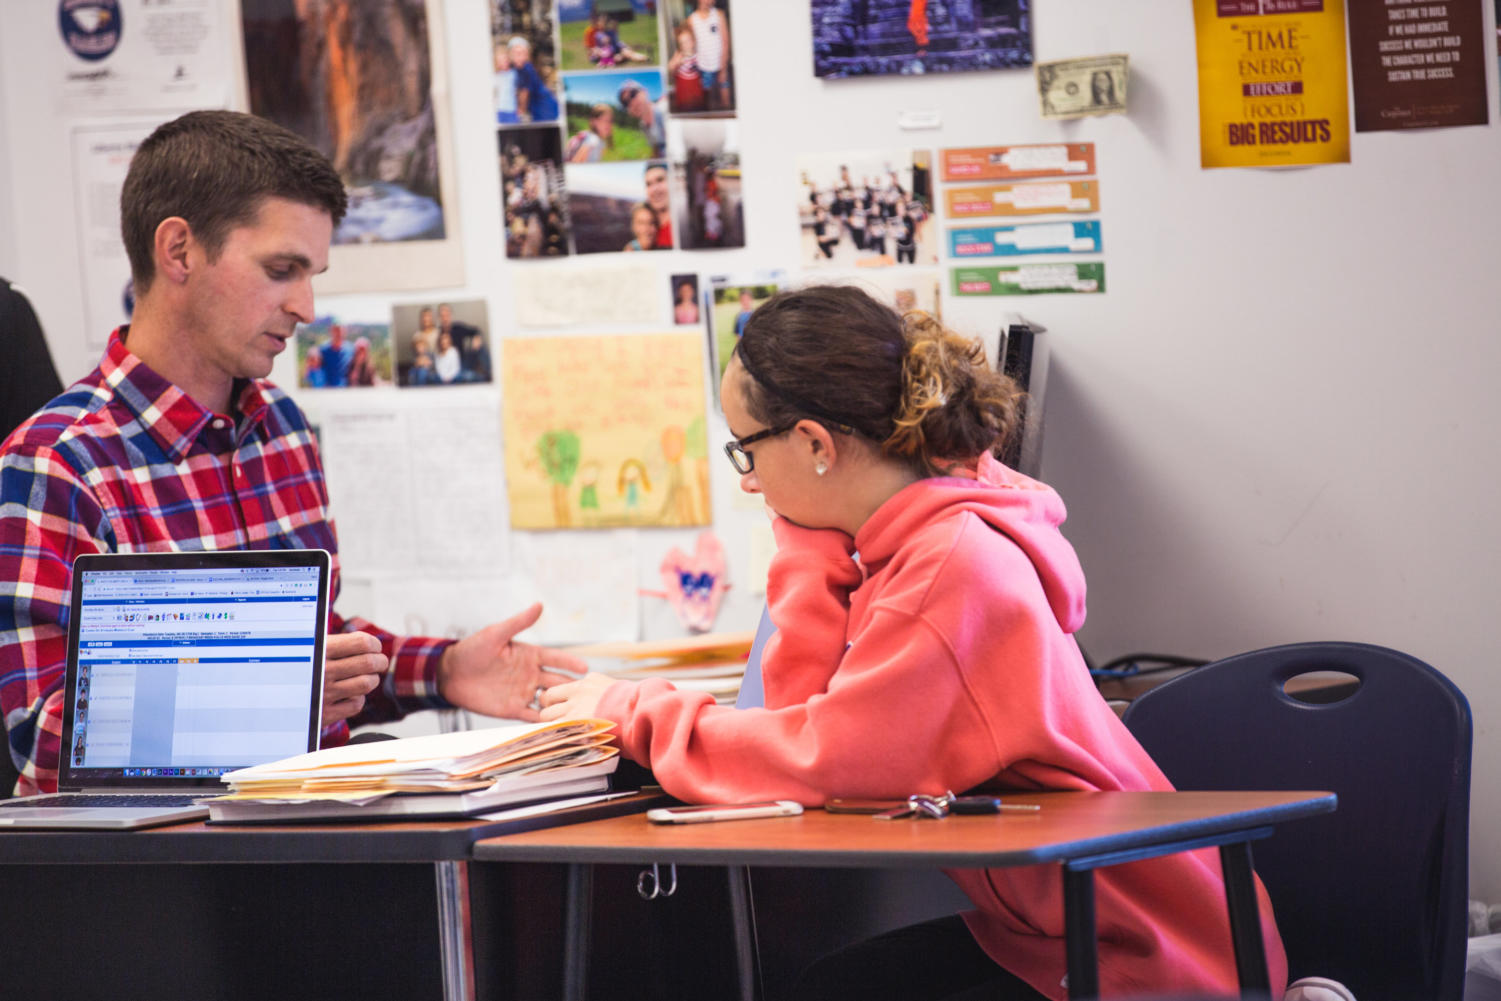 Mr. Hall discusses story planning for the Ledger magazine with co-editor-in-chief of the magazine junior Olivia Holler.